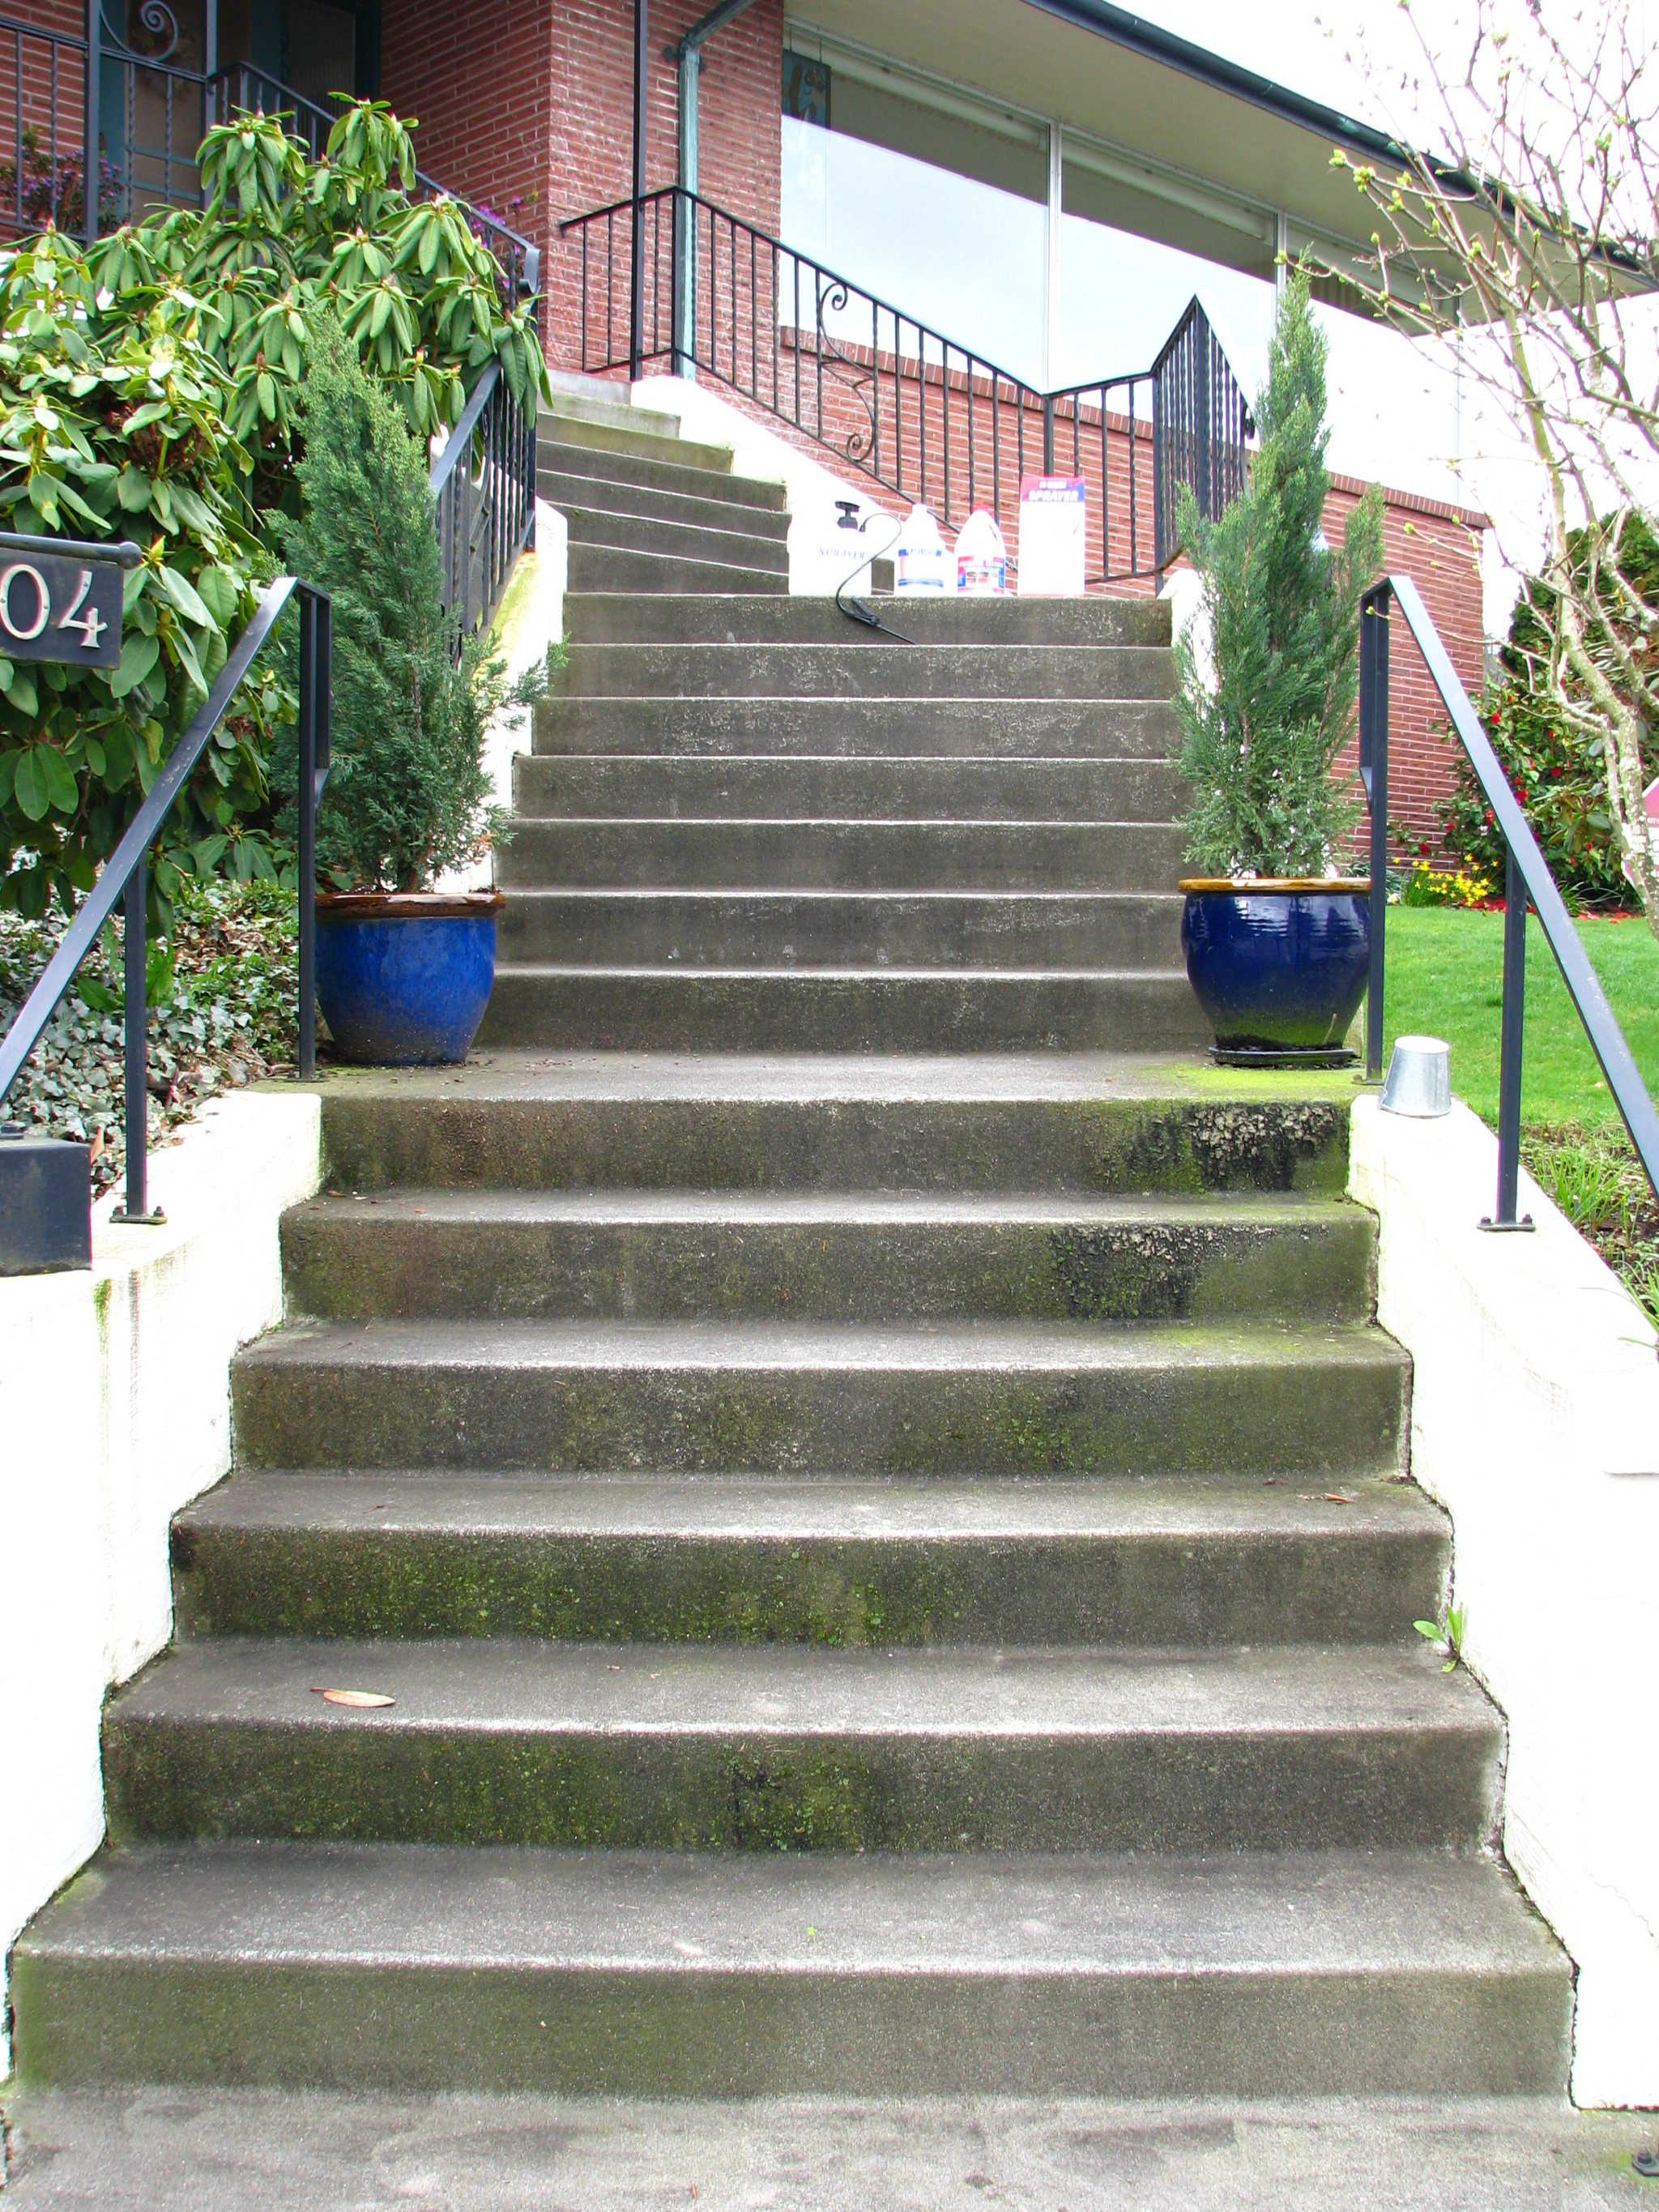 Water pressure cleaning jmarvinhandyman for Cleaning concrete steps